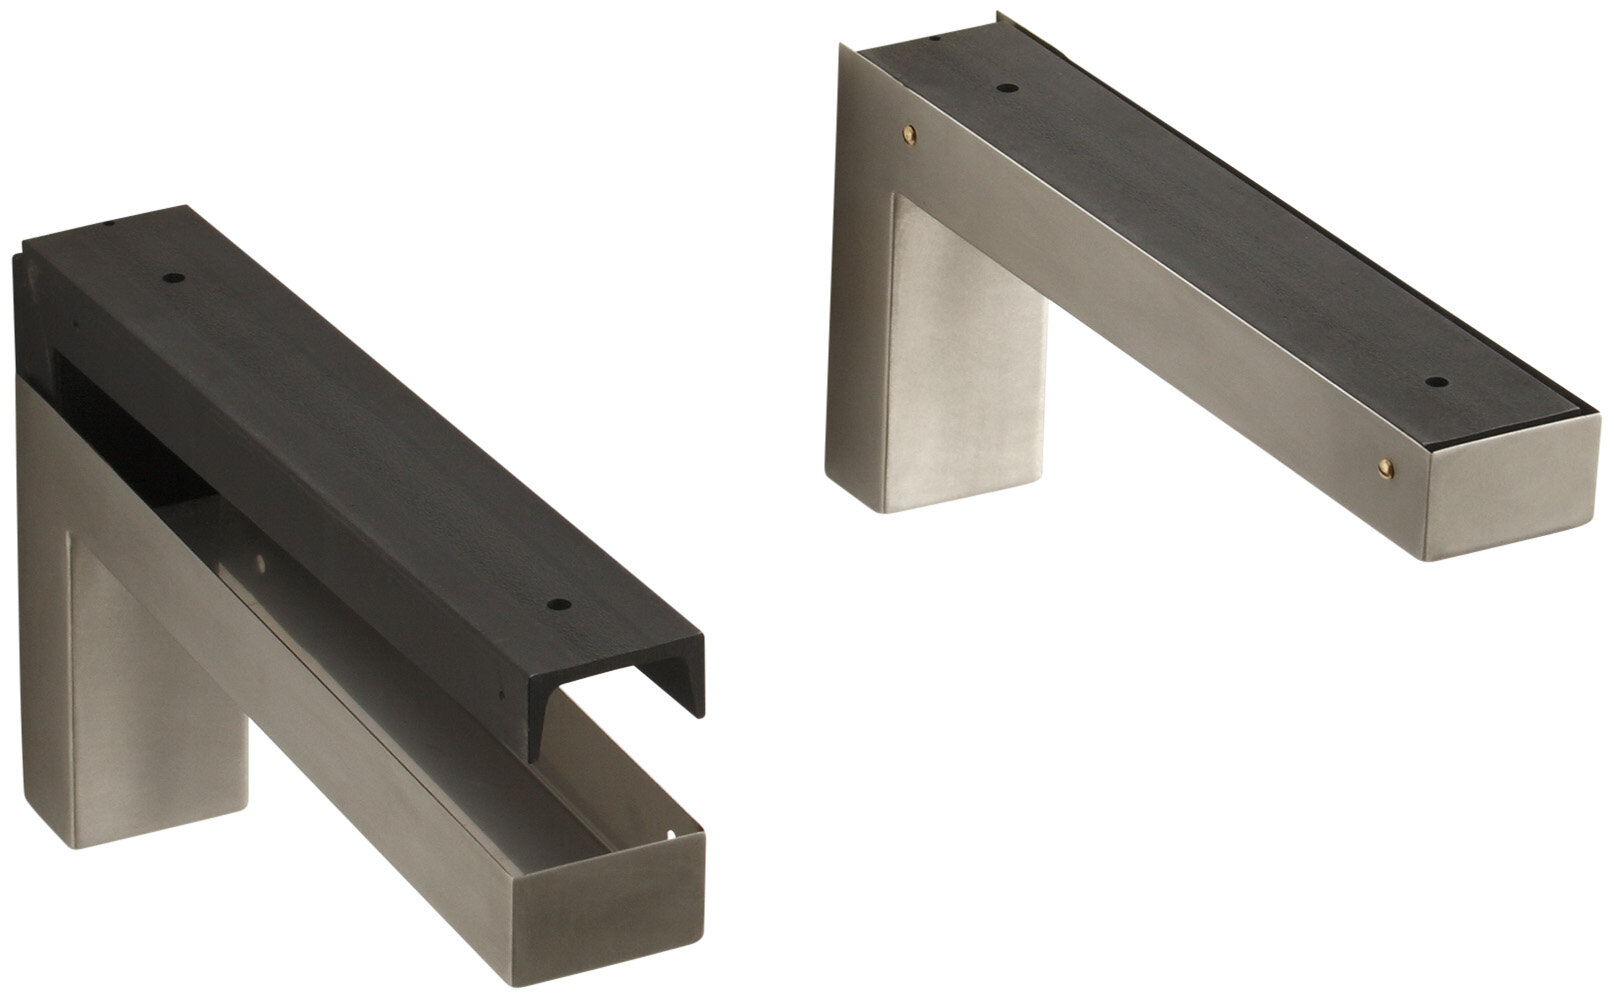 Kohler Bathroom Sink Bracket Kit Wayfair